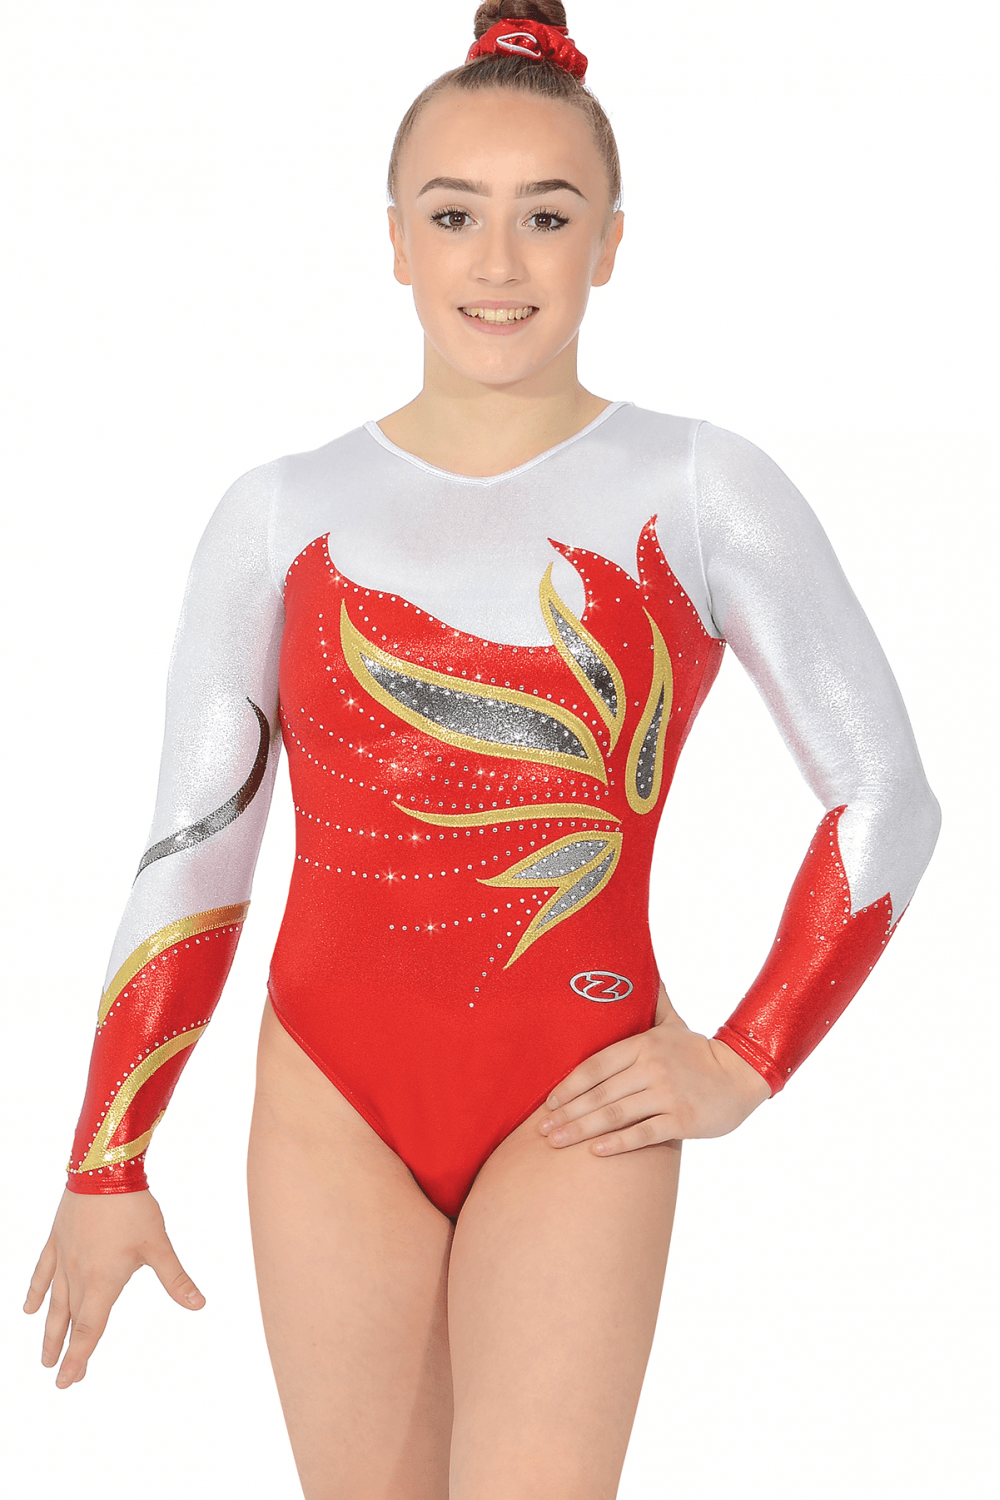 We have a huge range of the zone leotards for girls and women at planet dance including long sleeve gymnastics leotards and sleeveless gymnastics leotards